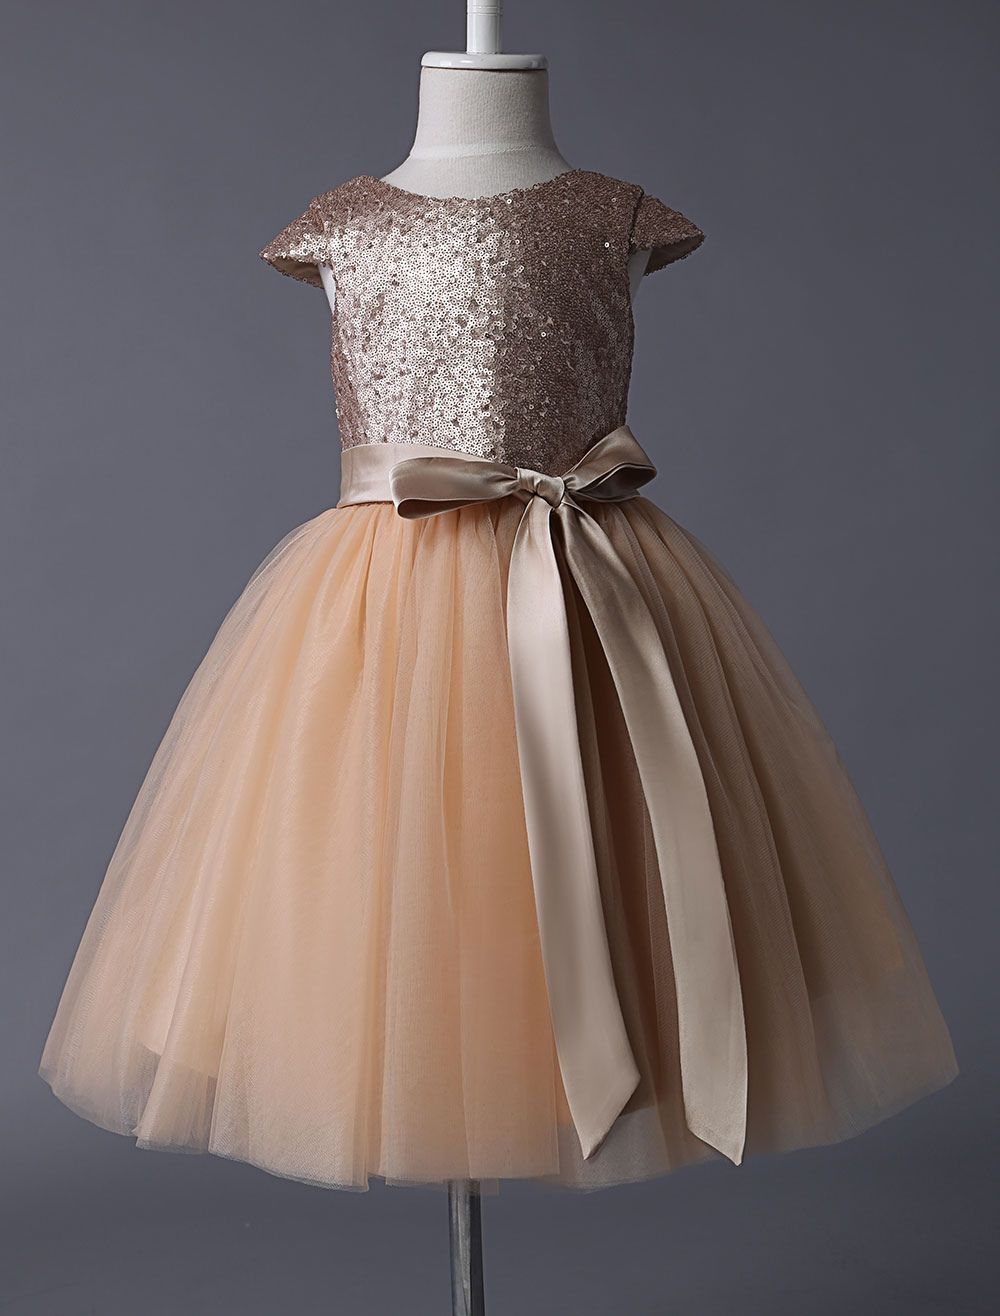 Flower Girl Dresses Champagne Sequined Tutu Pageant Dress Toddlers Cap Sleeves Tulle Short Kids Party Dresses